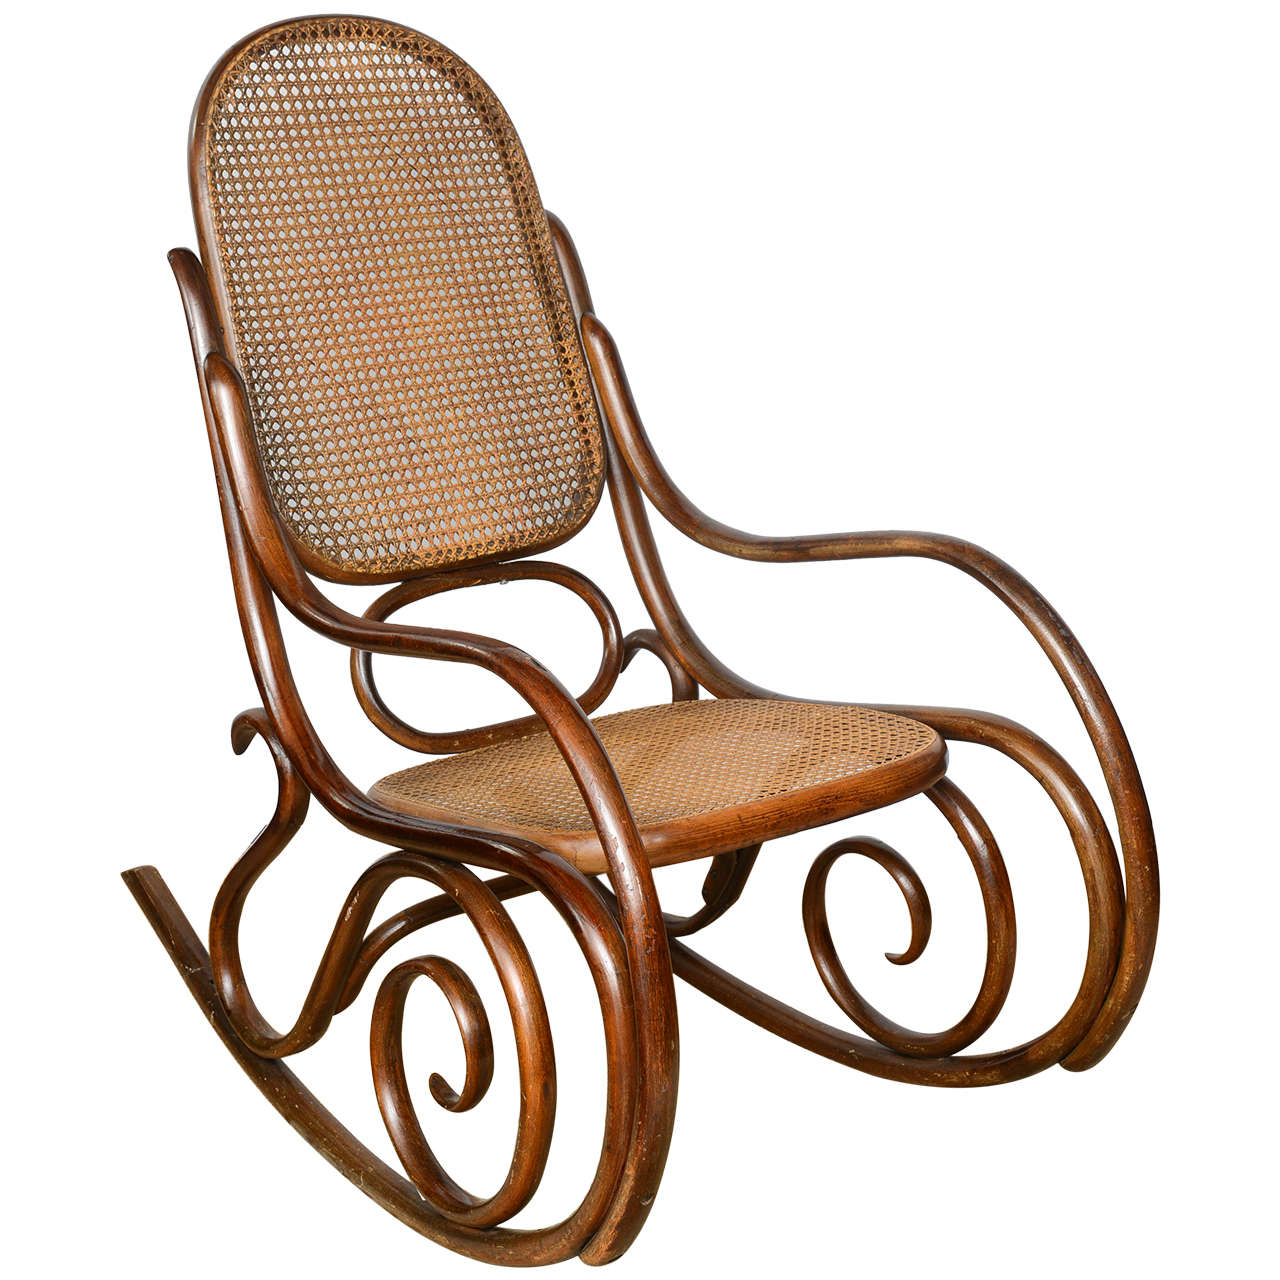 Vintage thonet bentwood rocking chair at 1stdibs for Rocking chair